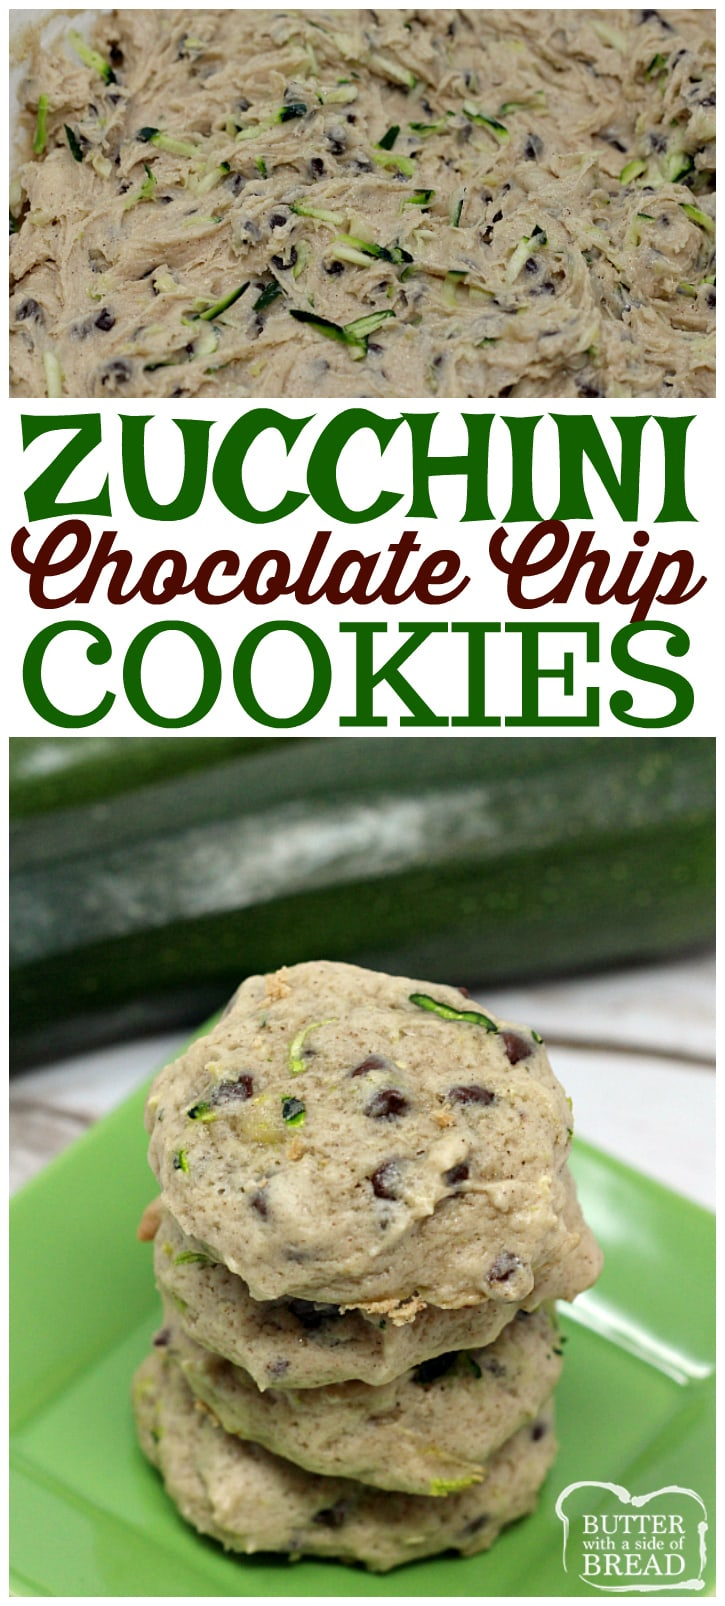 Zucchini Chocolate Chip Cookies are so soft and yummy, plus this is a delicious way to sneak in some veggies and use up all the #zucchini from your garden!Easy #cookie recipe from Butter With A Side of Bread